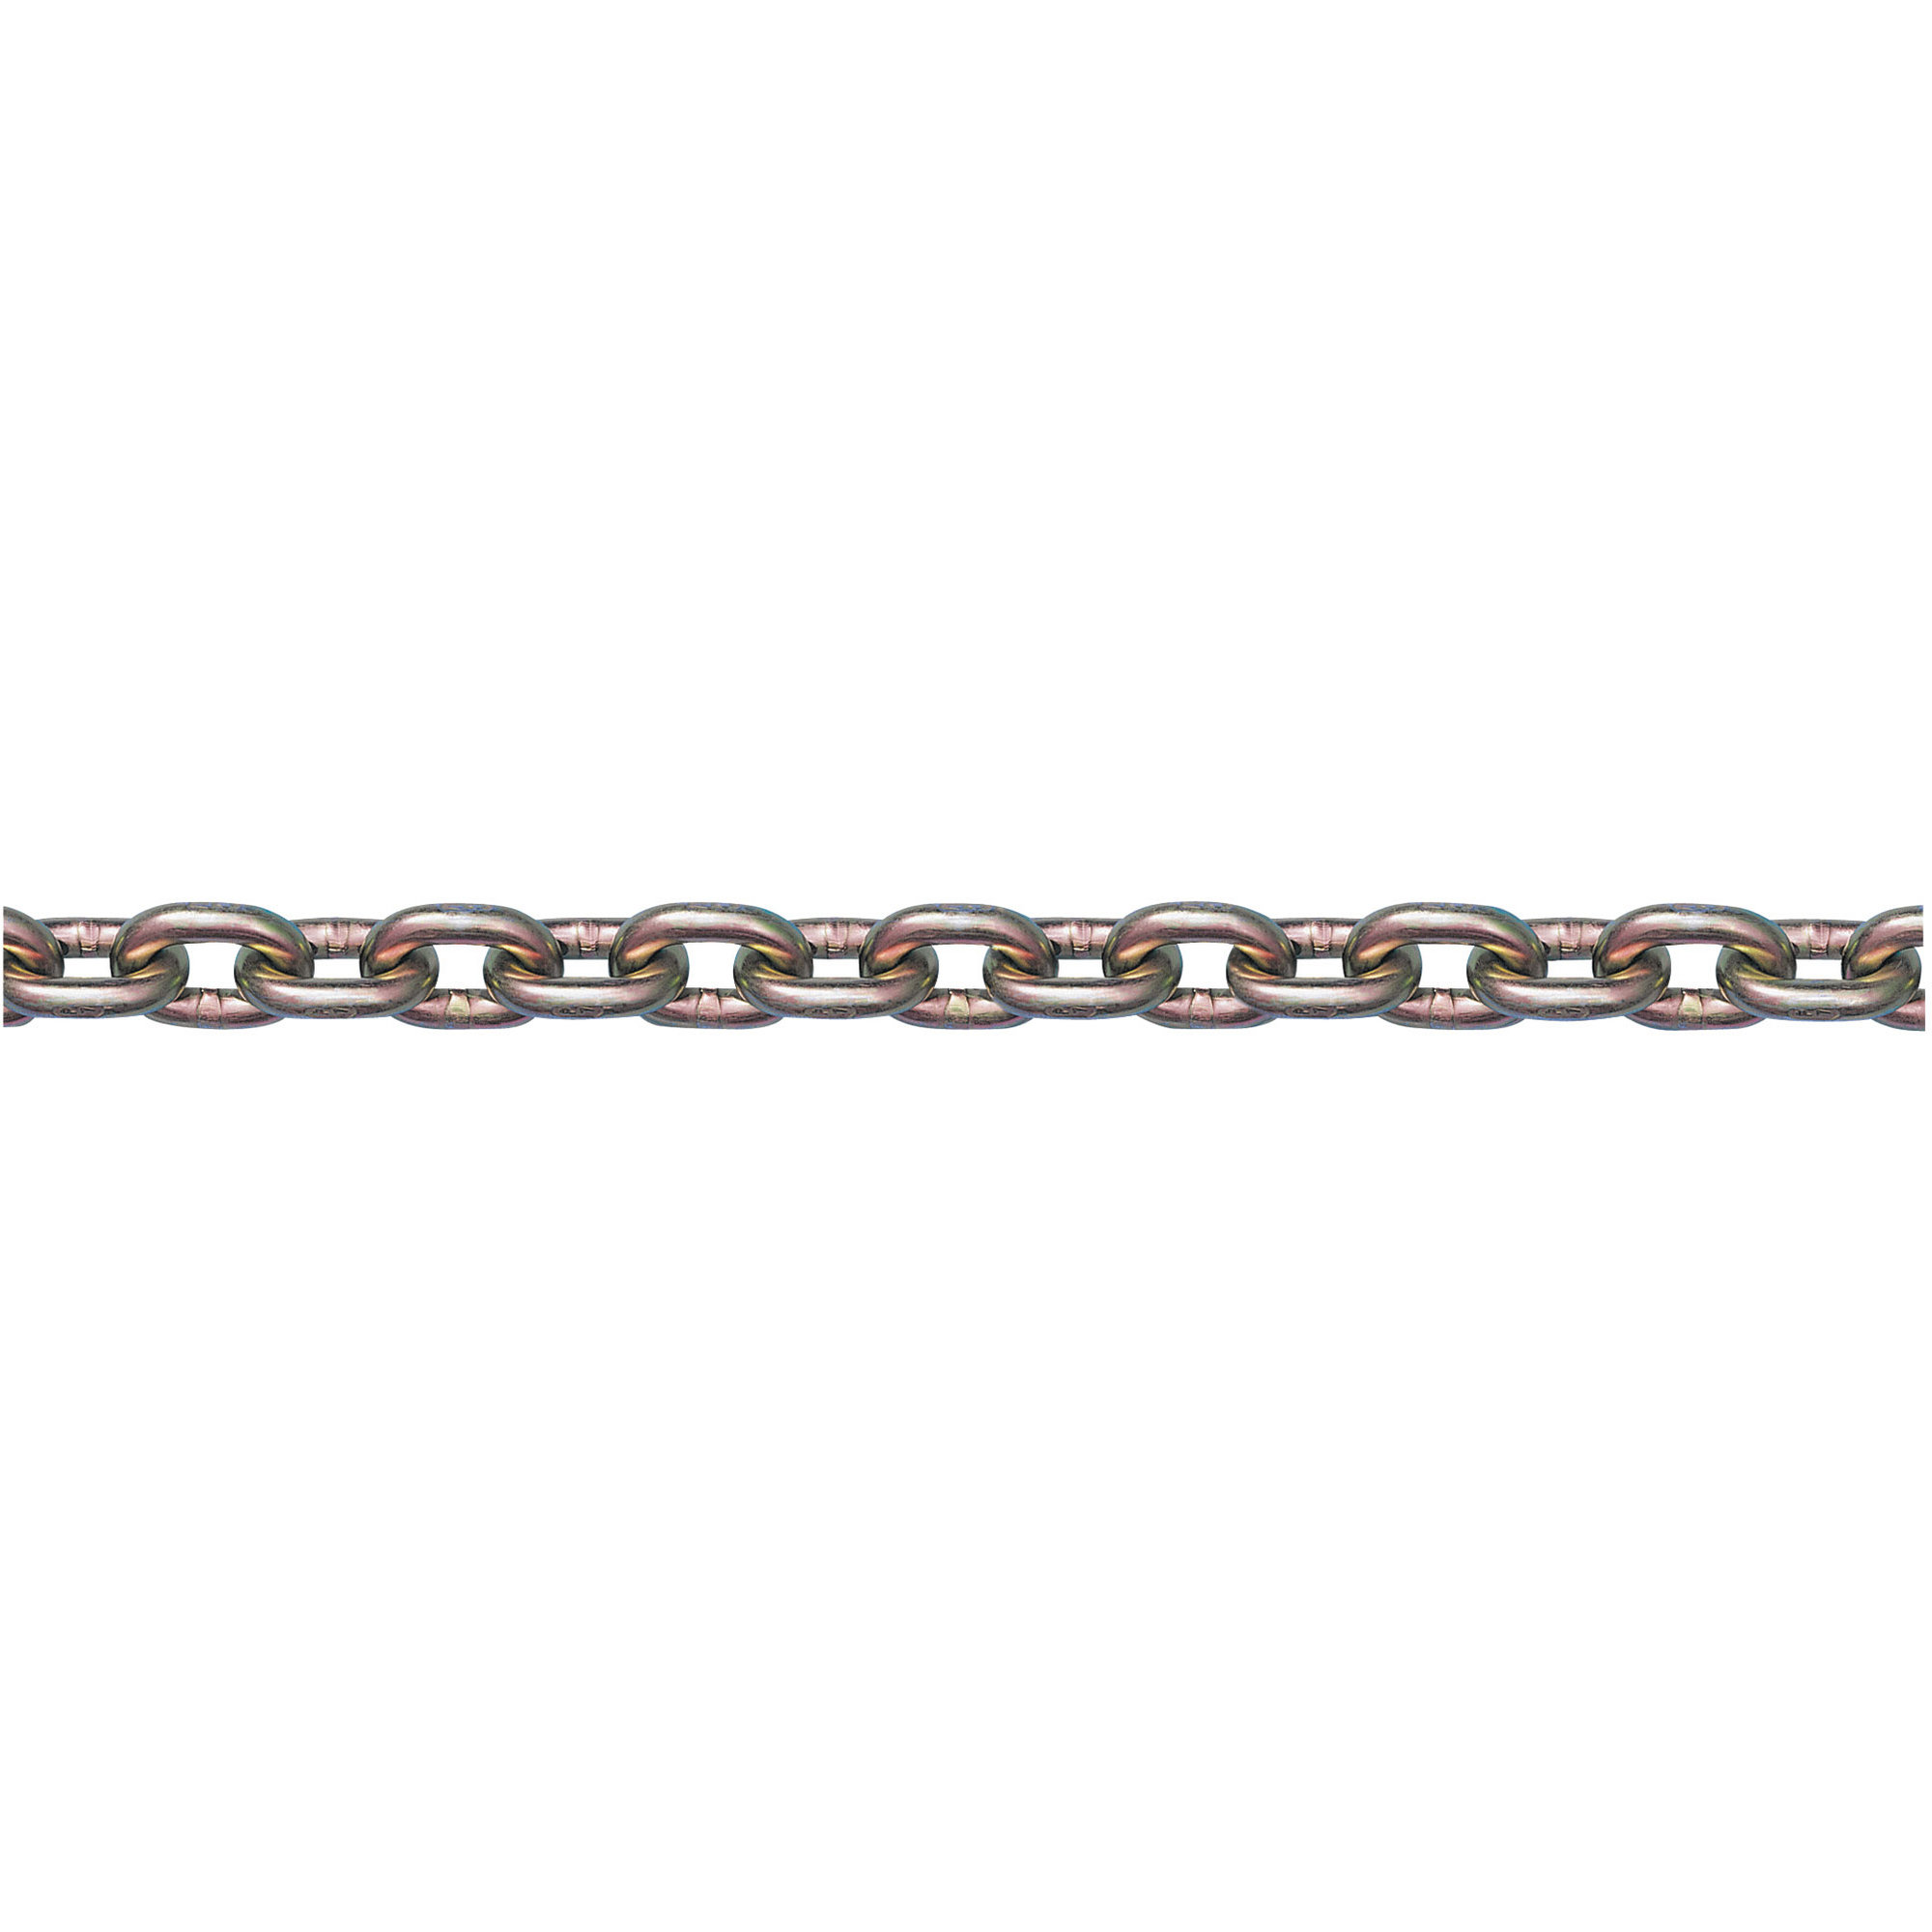 Chain clipart metal chain. Peerless ft in grade